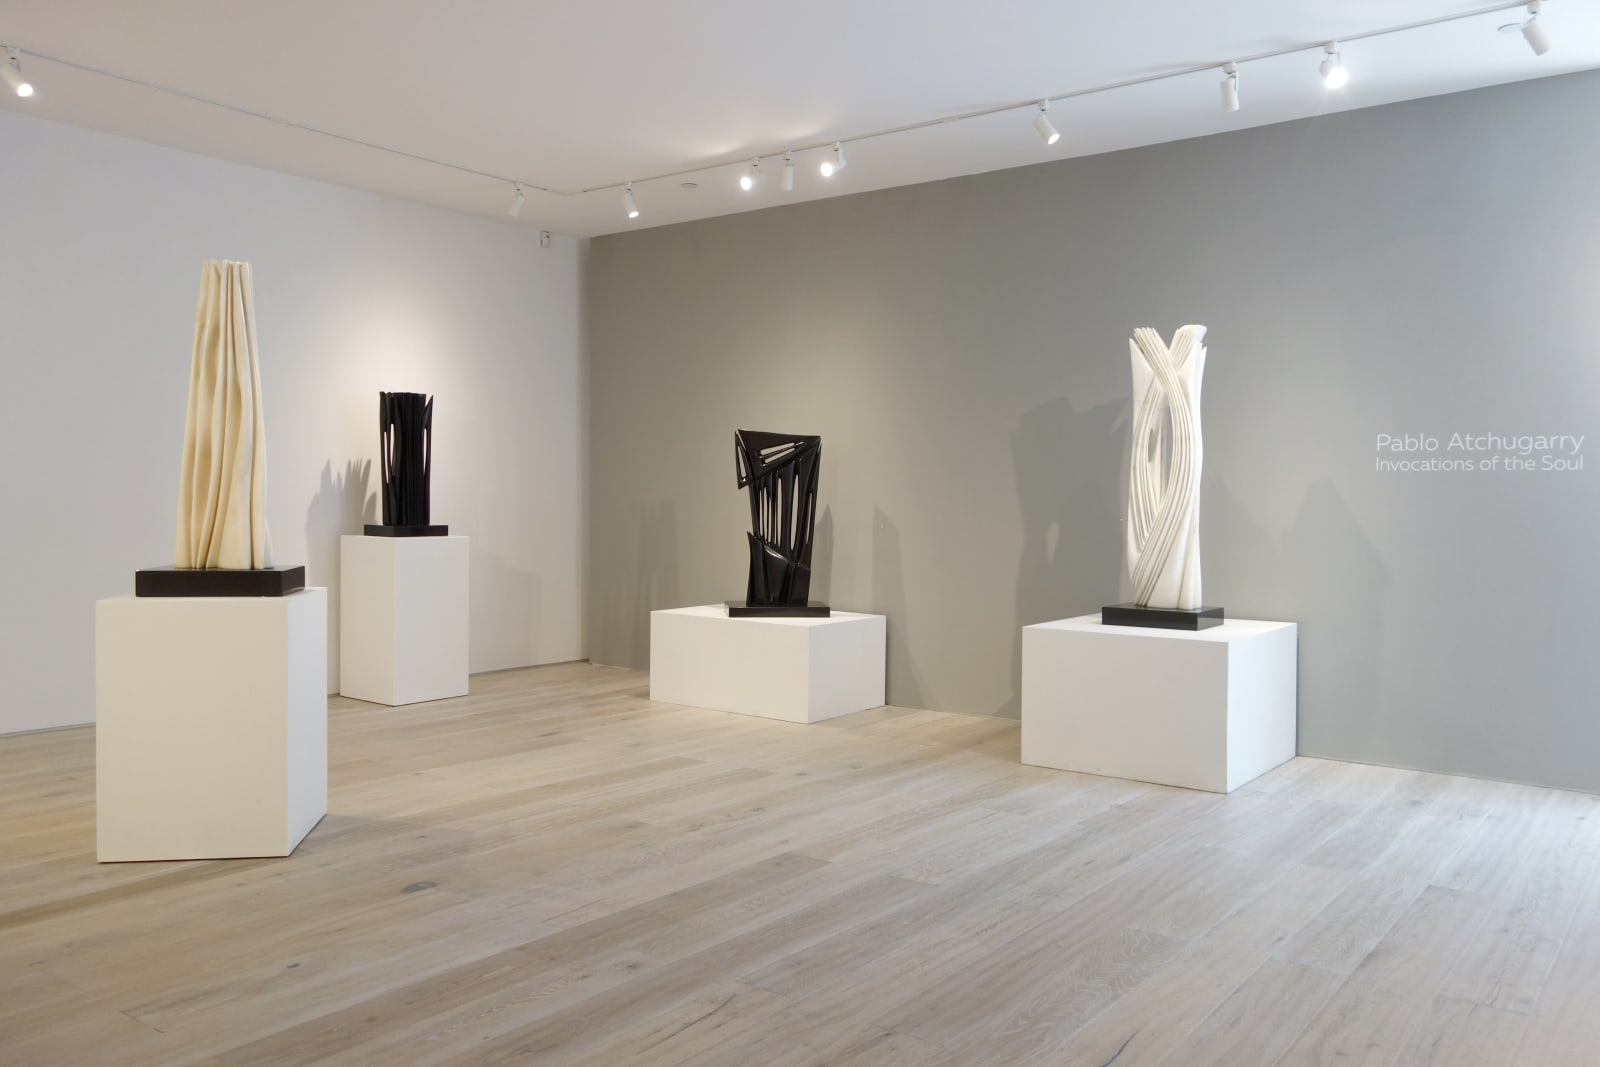 Installation view: Pablo Atchugarry: Invocations of the Soul